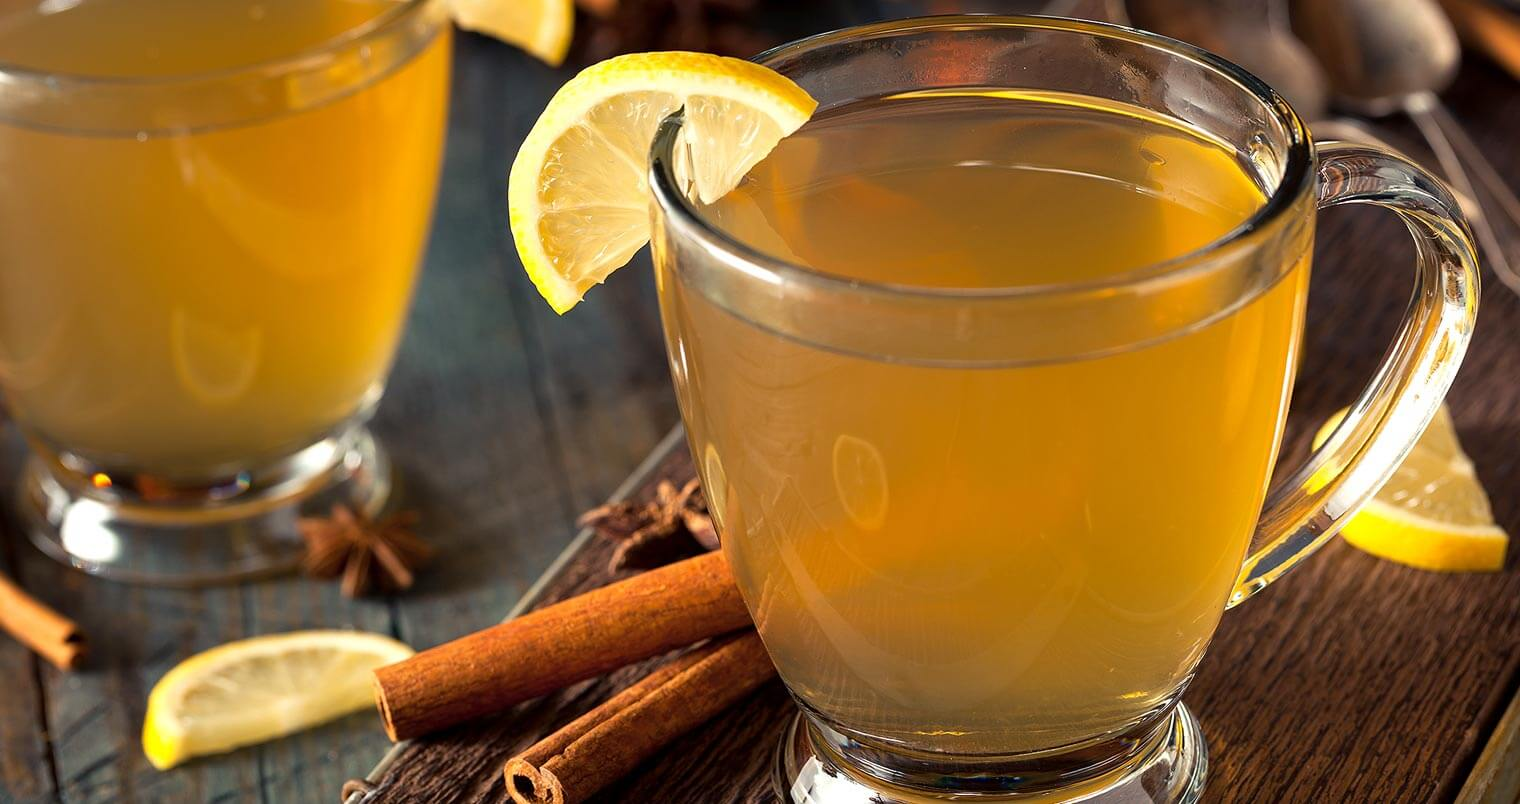 BACARDĺ Rum Hot Toddy, cocktails with cinnamon stick garnish and lemon, featured image